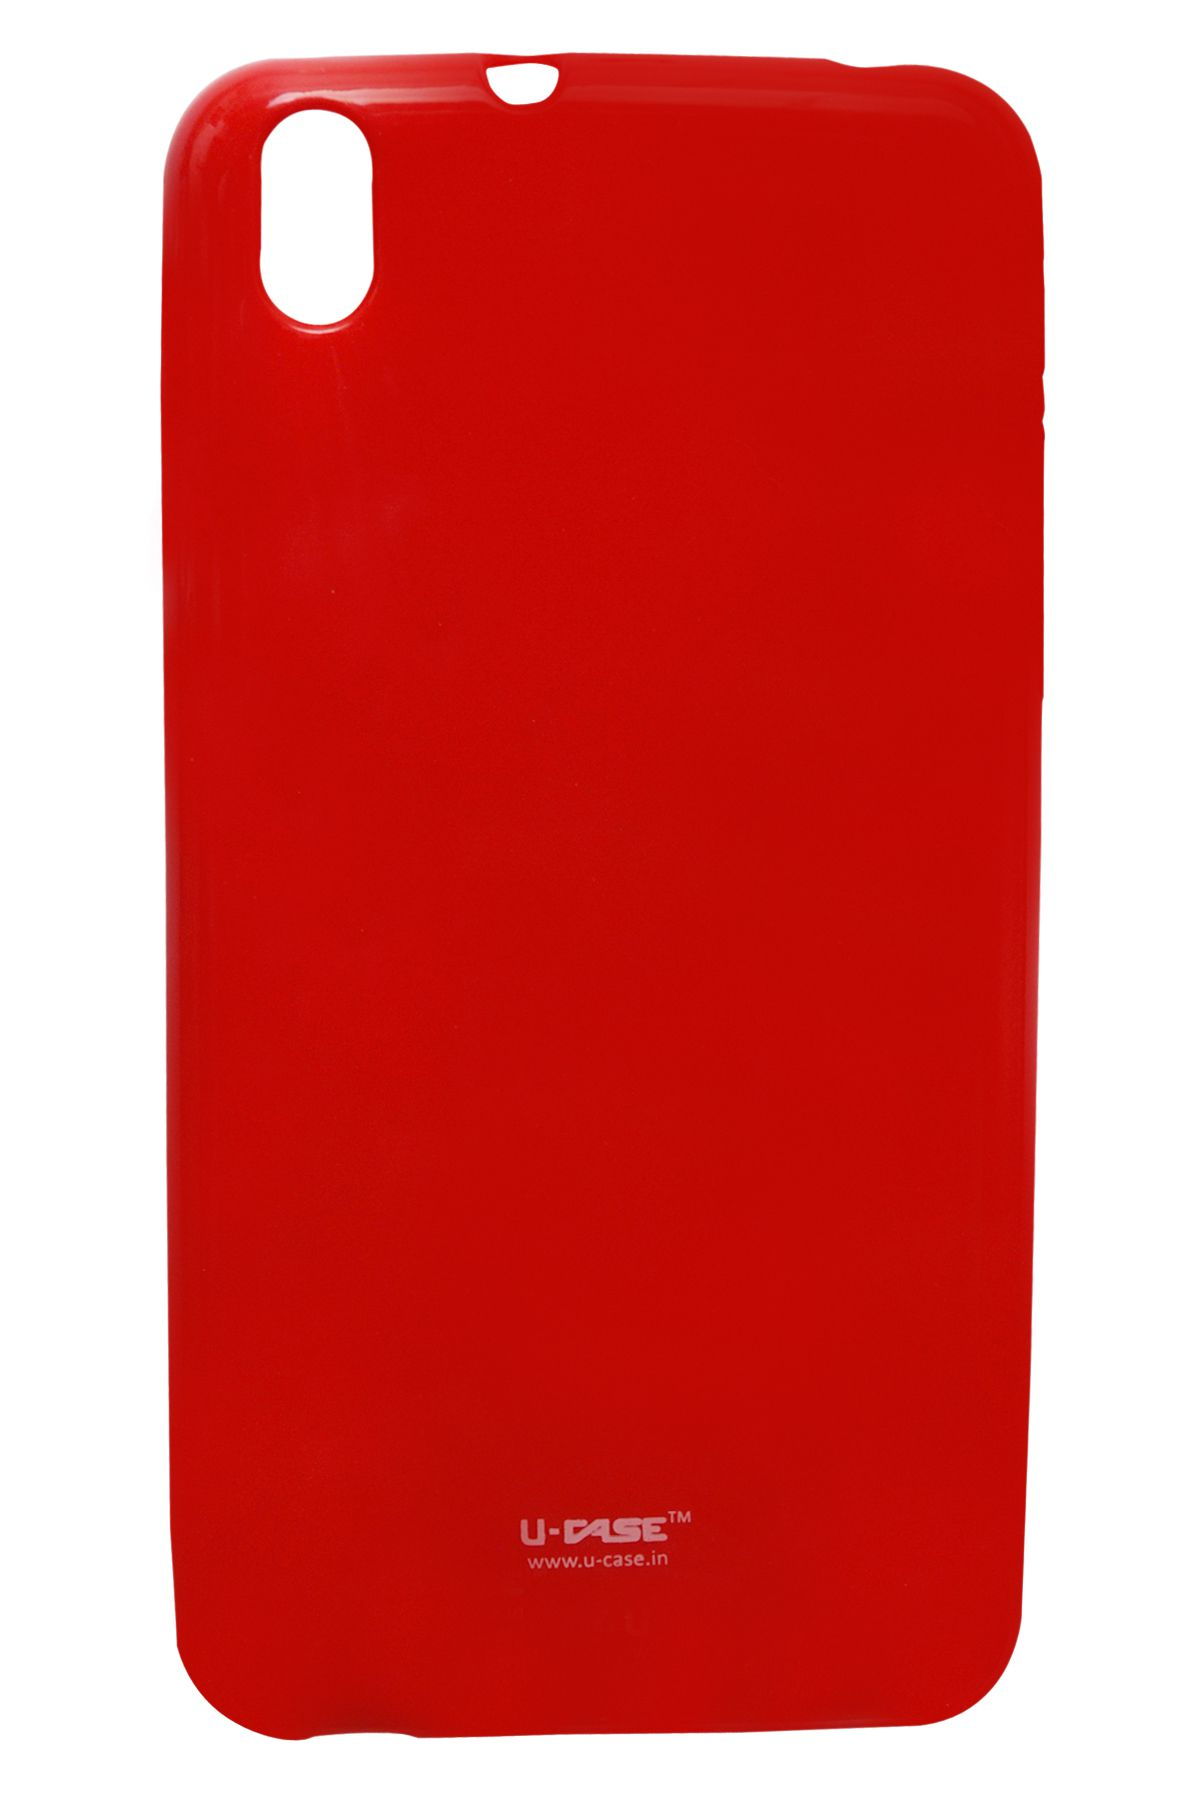 online store d92c8 7b5e8 HTC Desire 816 Cover by Oyedeal - Red